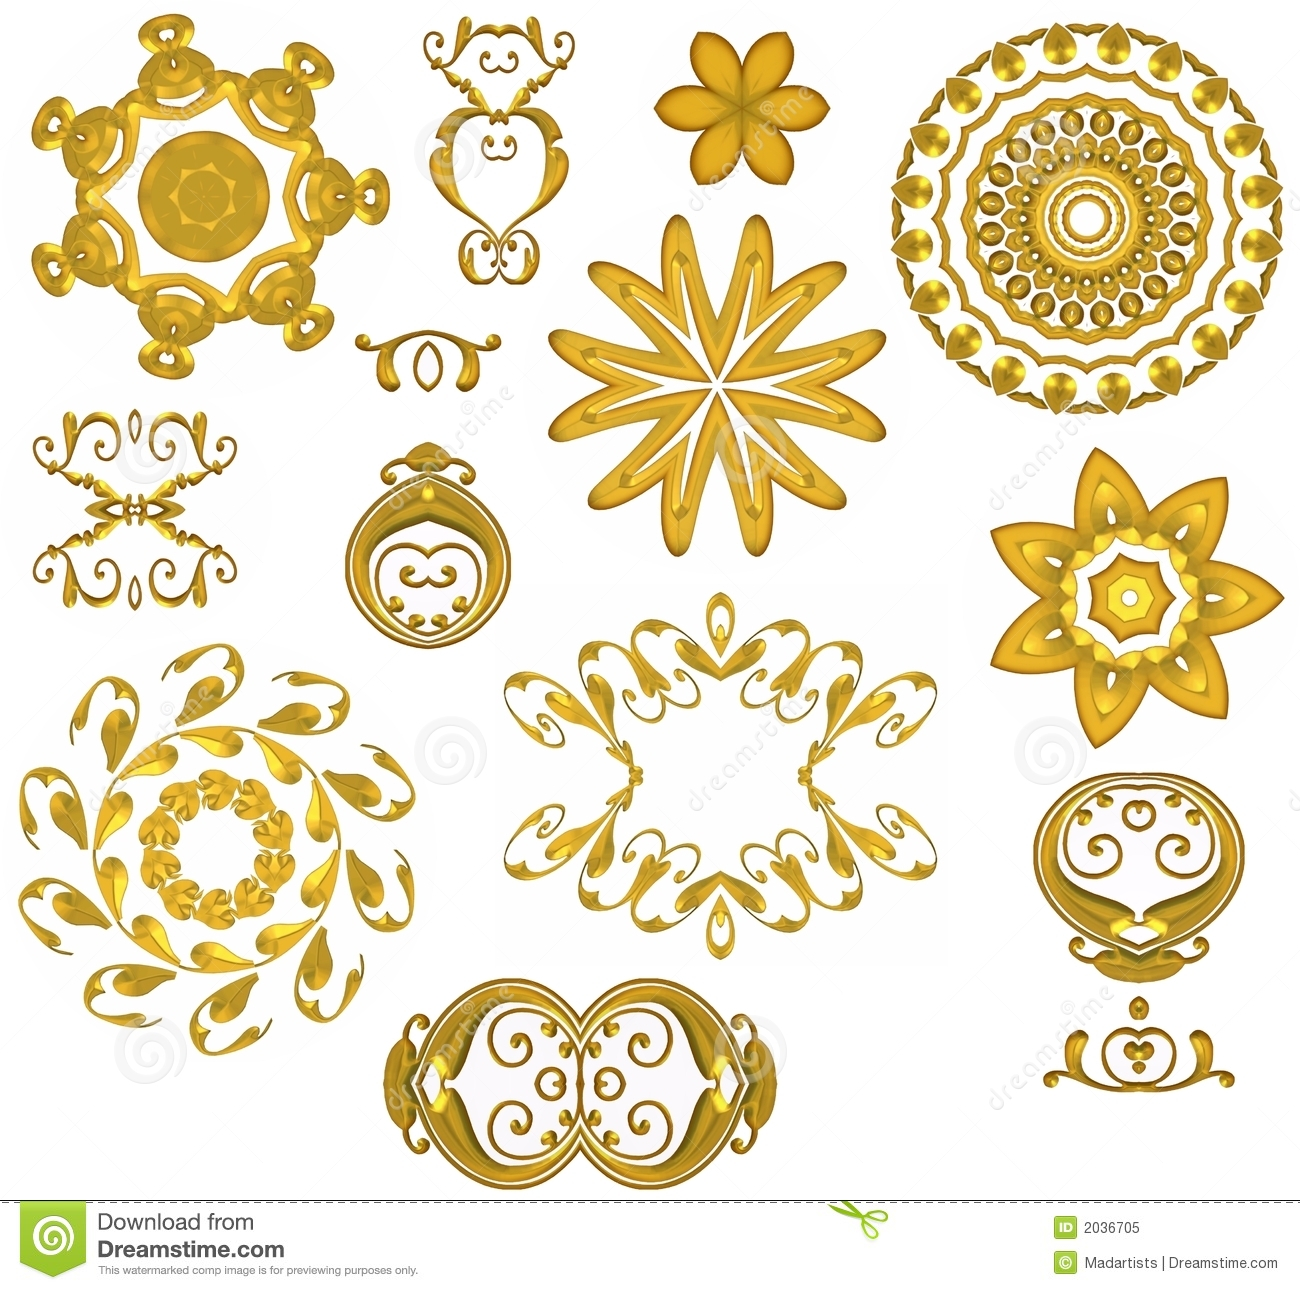 Decorative Gold Web Icons Royalty Free Stock Photo - Image ... Greek Columns Vector